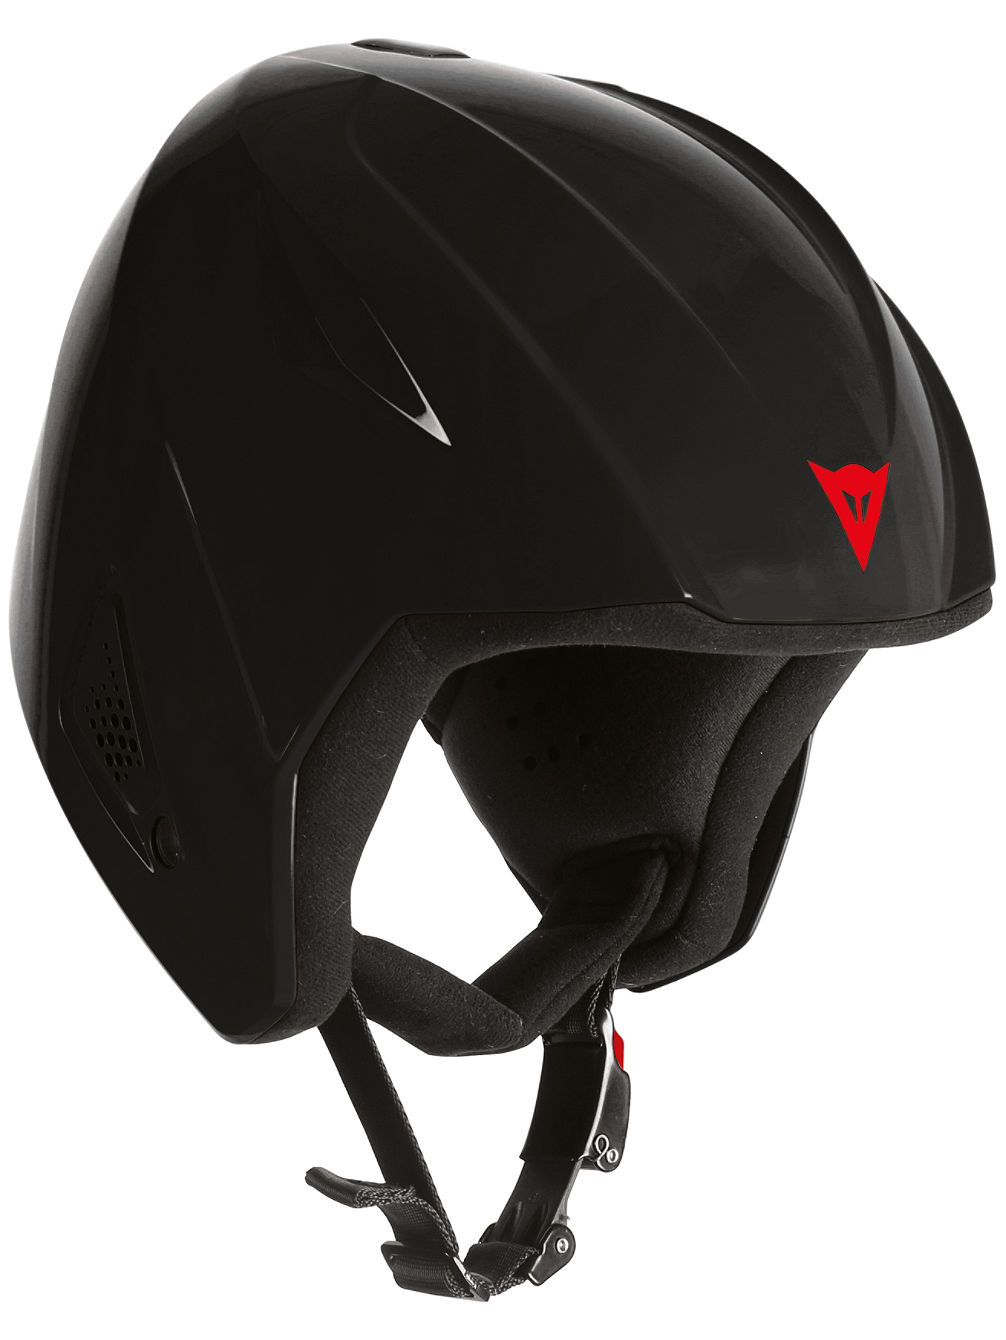 dainese-snow-team-evo-helmet-youth